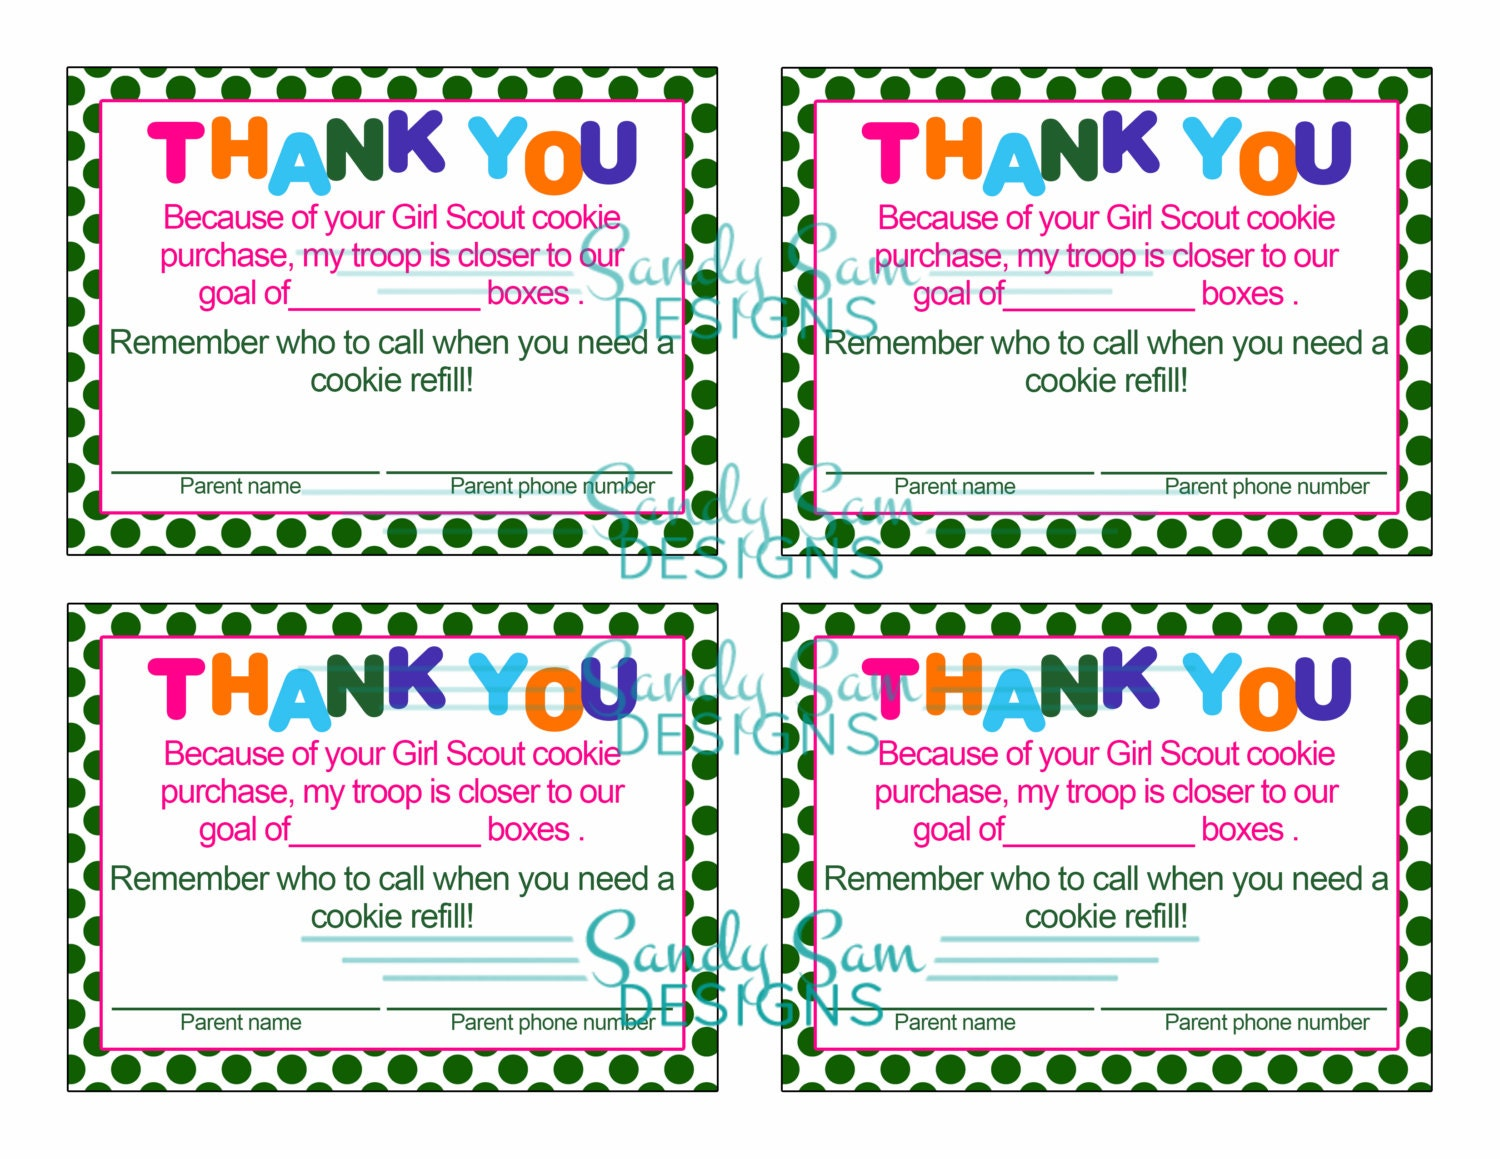 girl scout cookie thank you card by sandysamdesigns on etsy